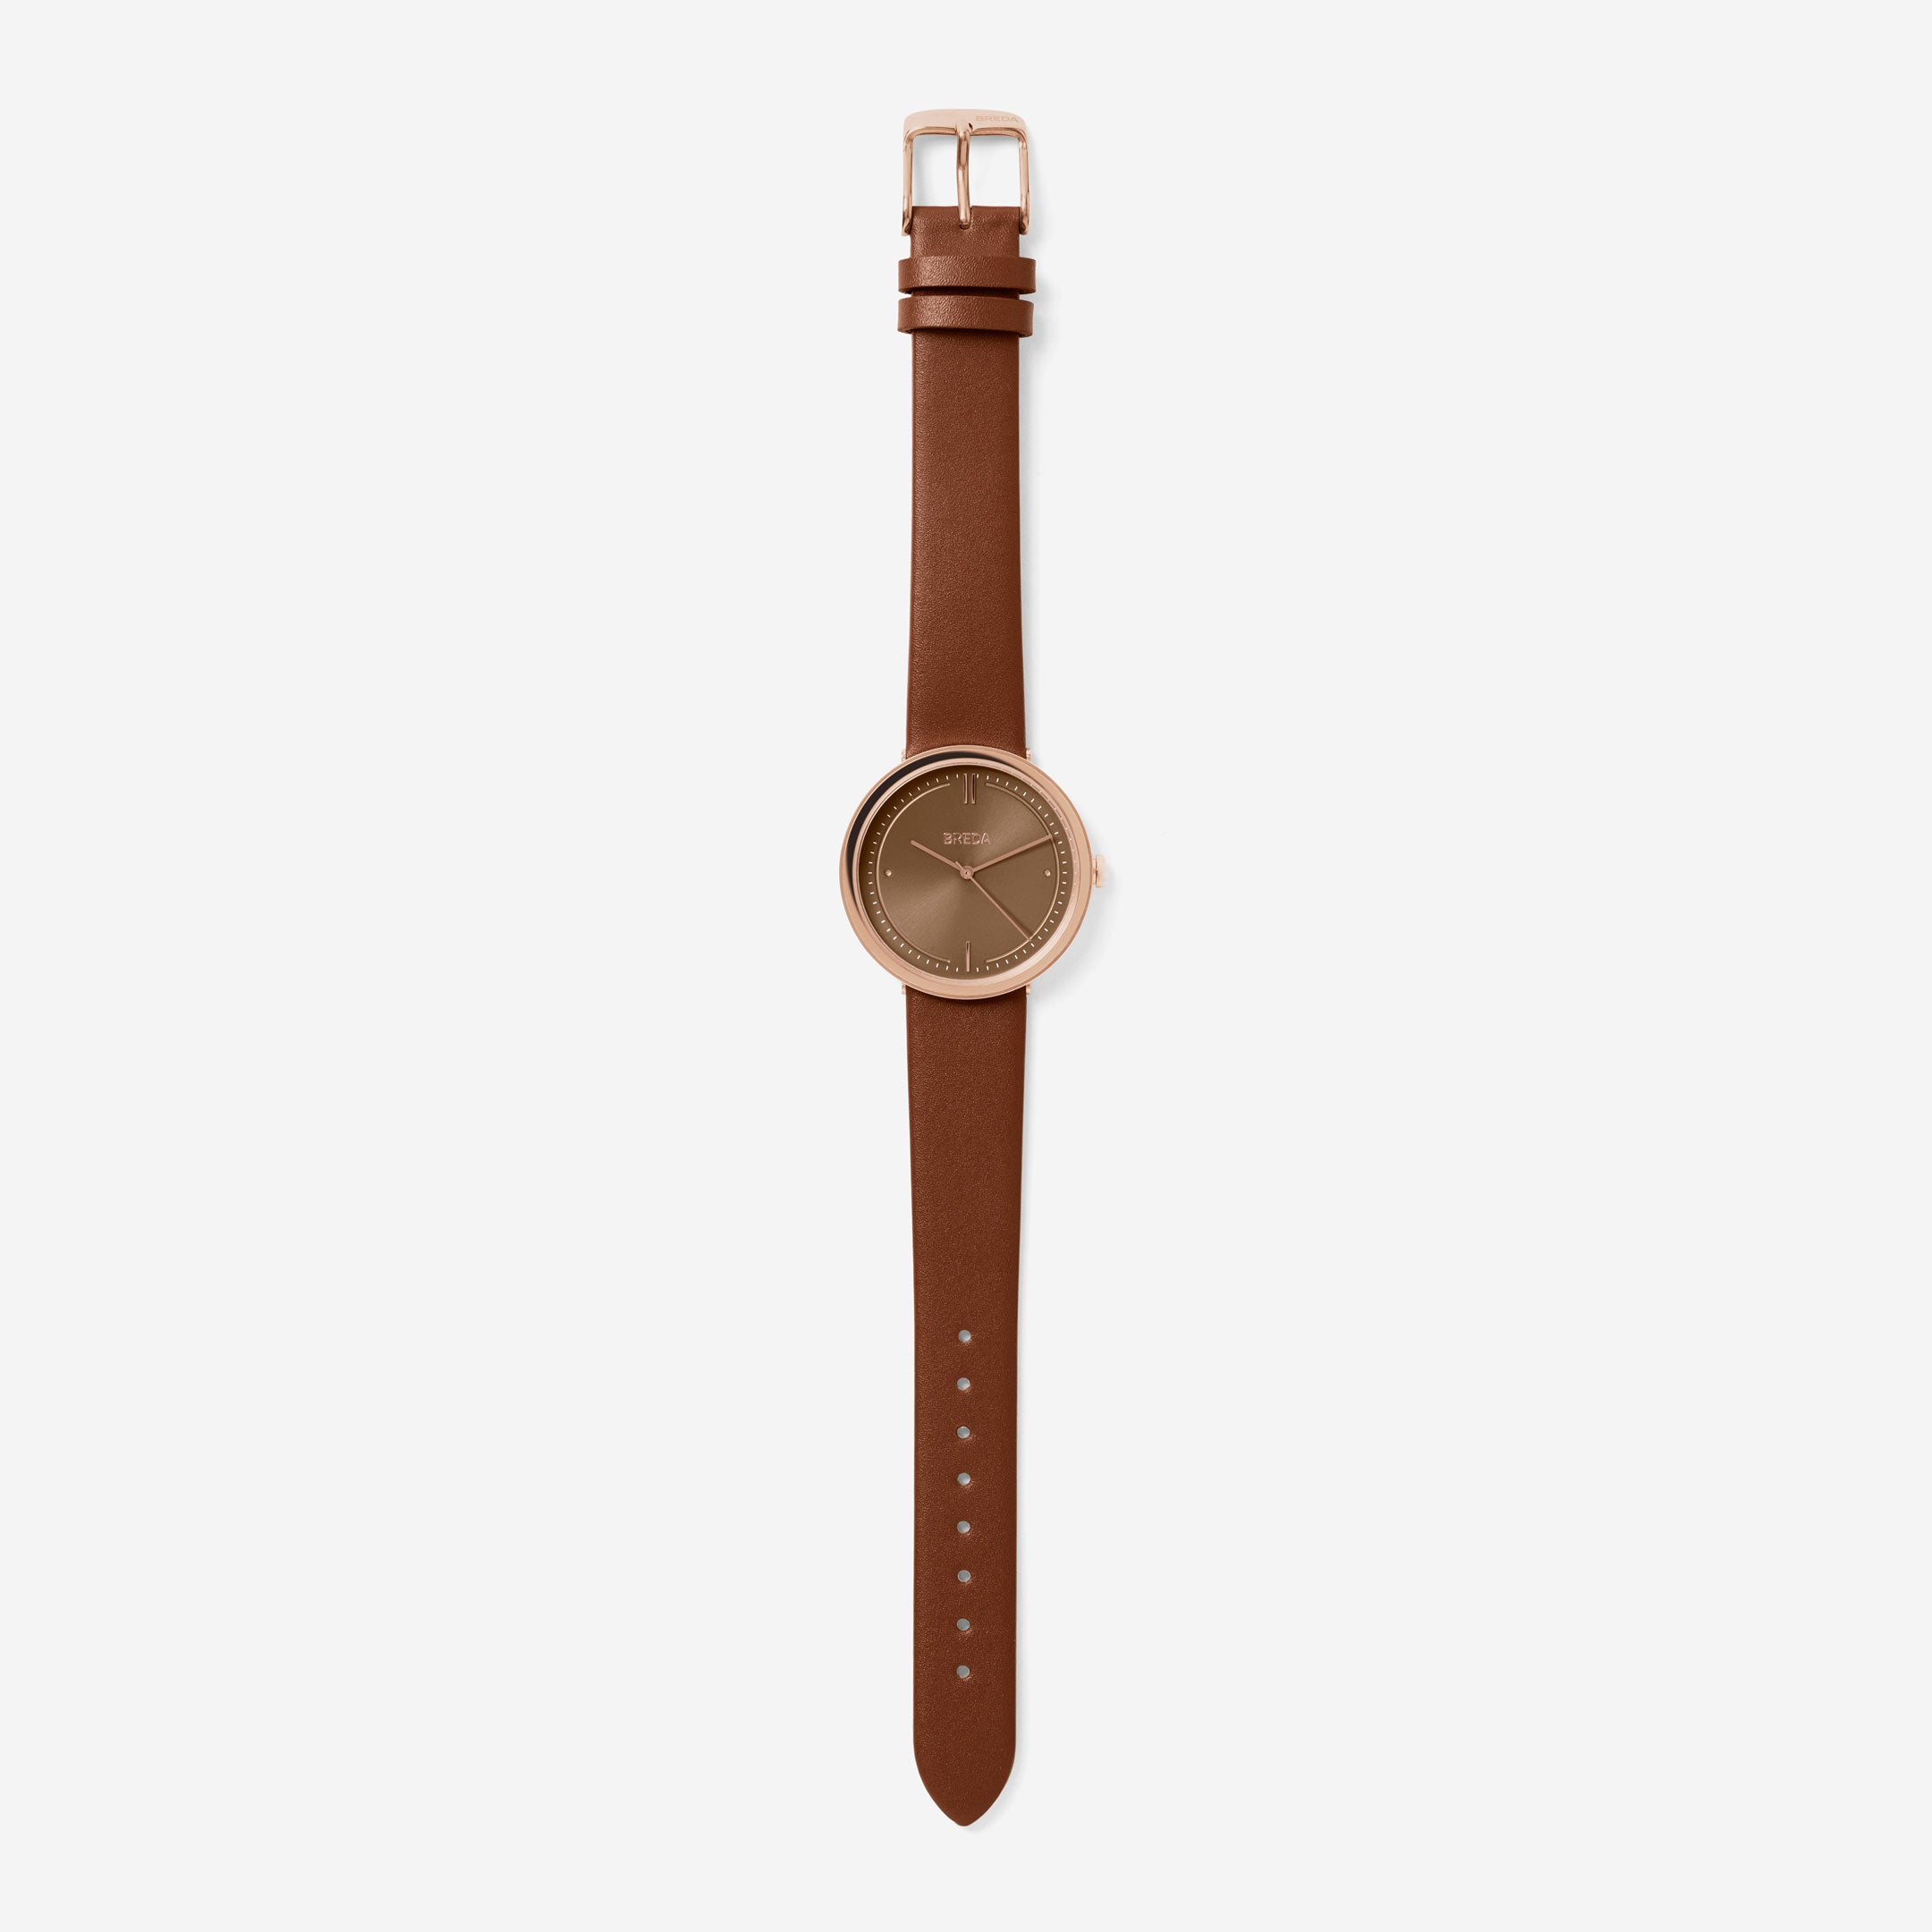 //cdn.shopify.com/s/files/1/0879/6650/products/breda-agnes-1733d-rosegold-brown-leather-watch-long_1024x1024.jpg?v=1522789096